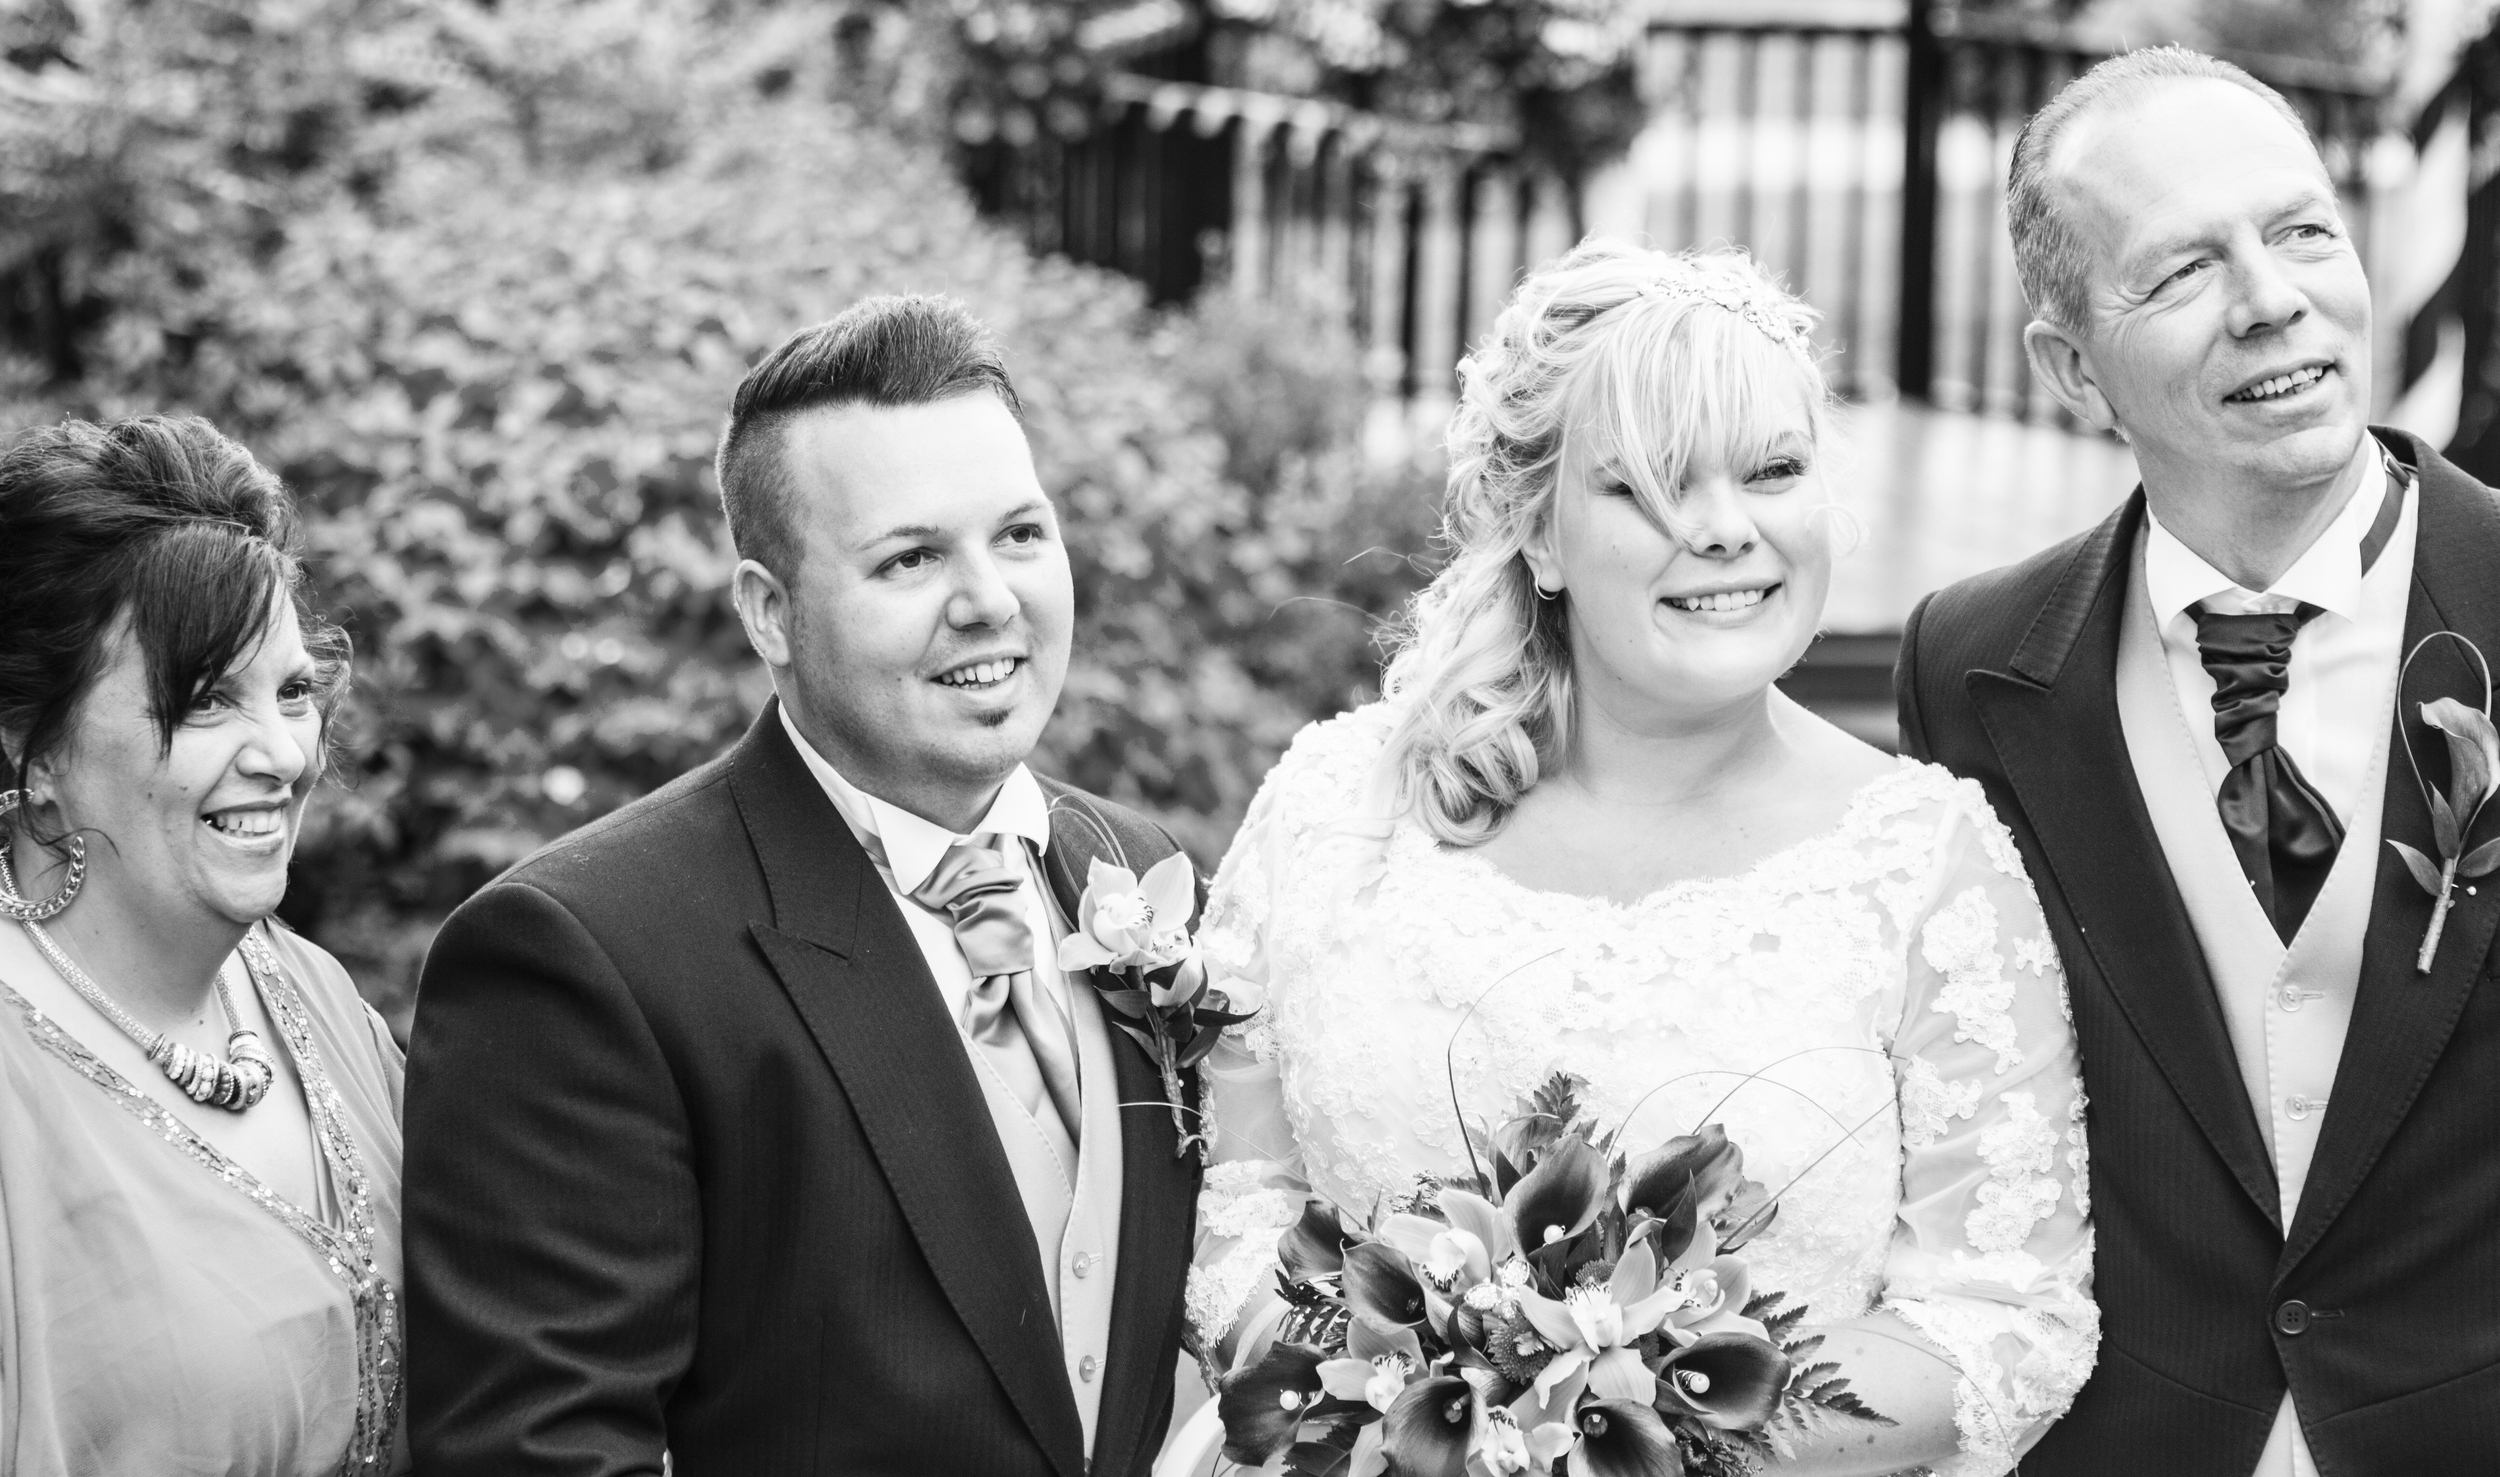 22-06-2013_Alex_Pople_Jess_Lewis_Wedding_EDITED_00030.jpg